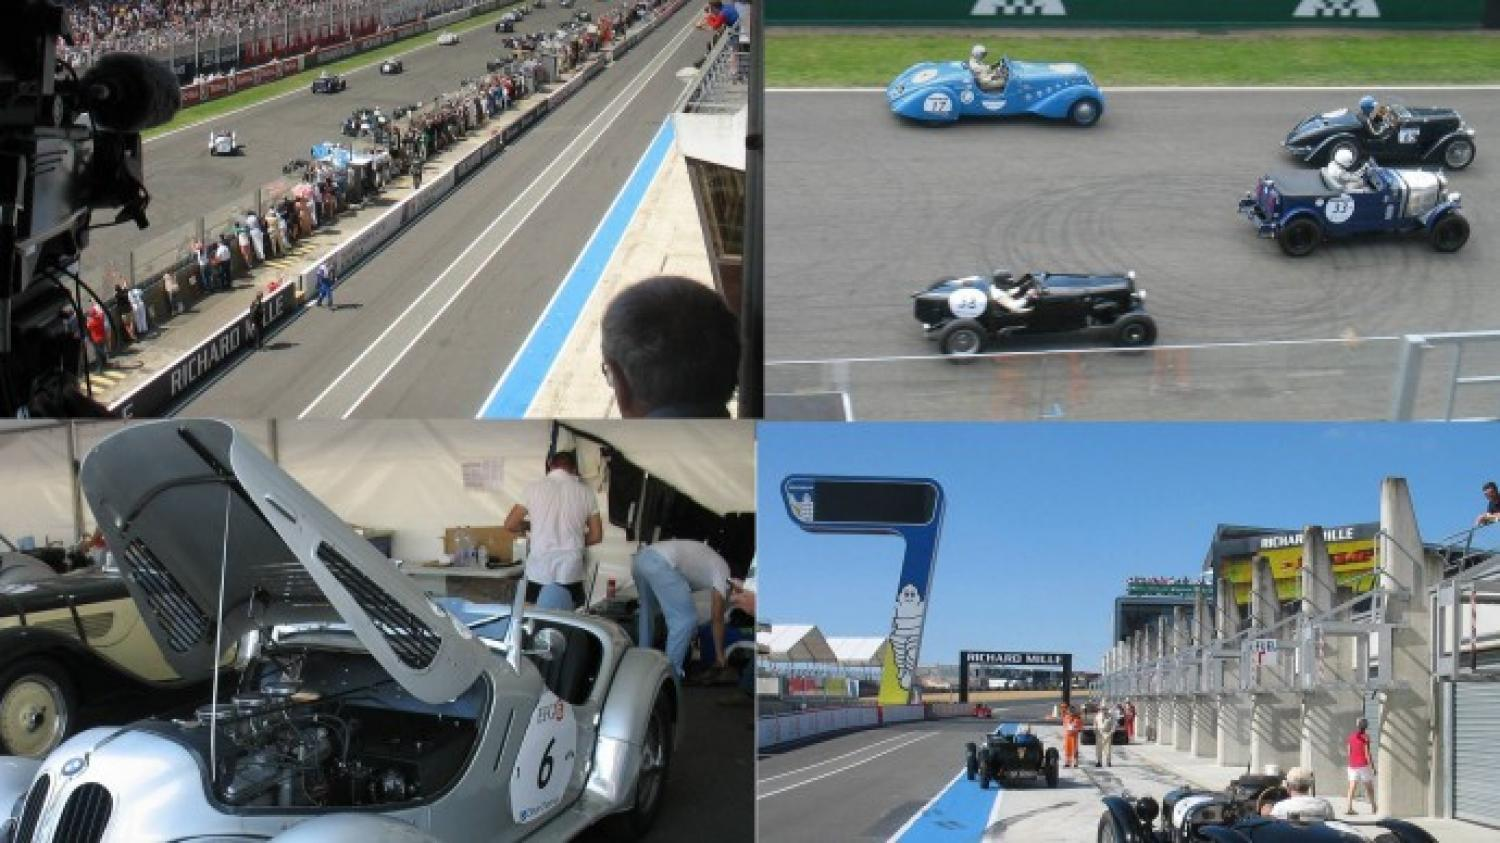 Le Mans Classic 2016 - The first heats affected by the heat!